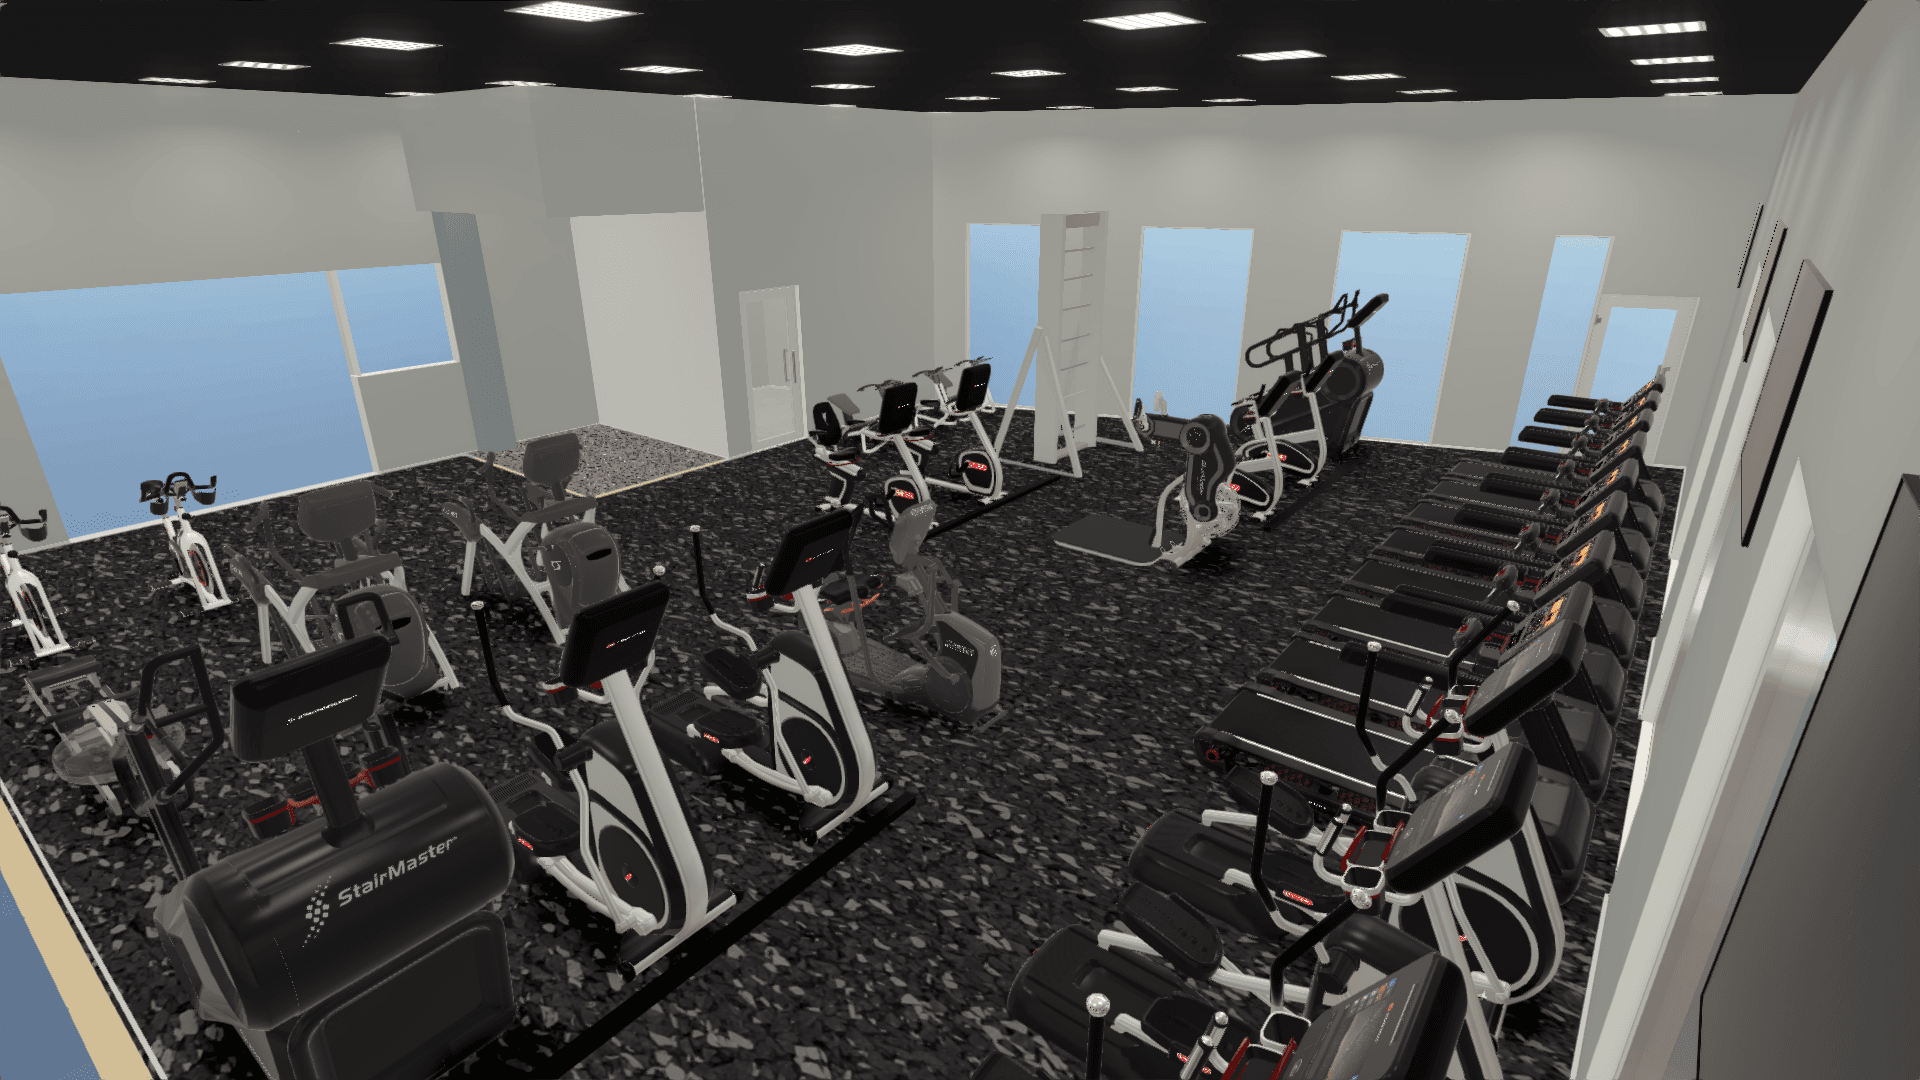 Rendering of what the cardio equipment will look like in the room when it's done.